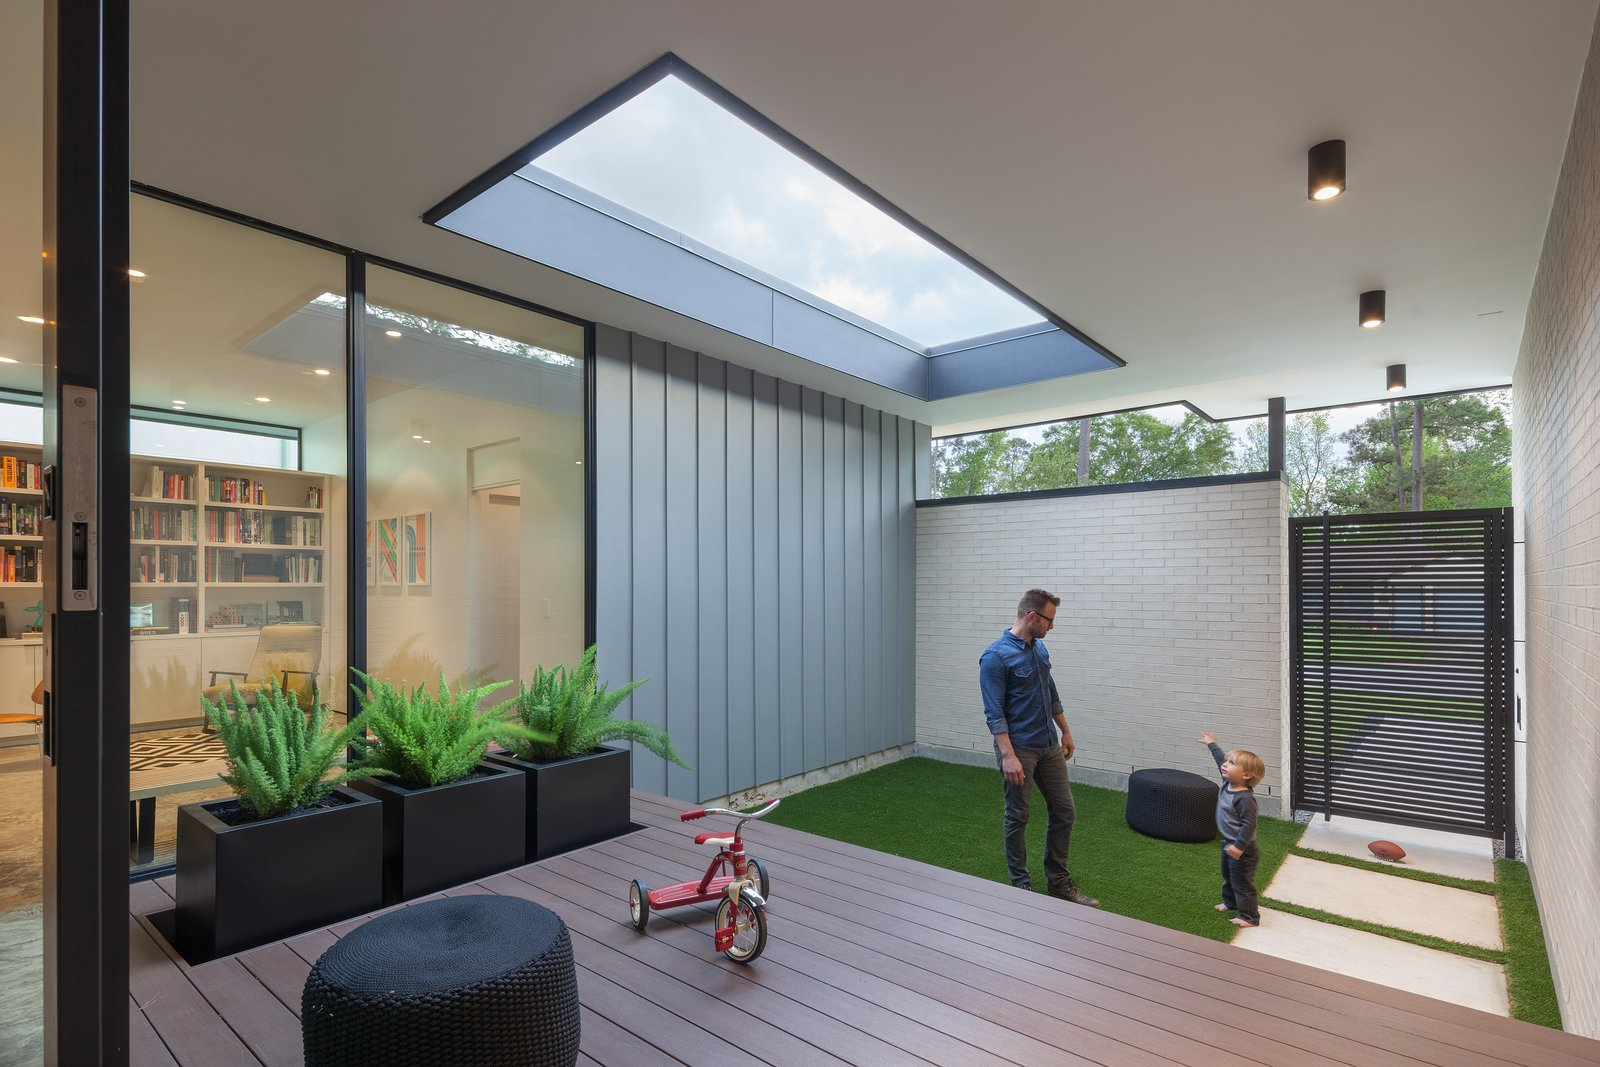 Outdoor and Front Yard Entry Courtyard  Pavilion Haus by studioMET architects